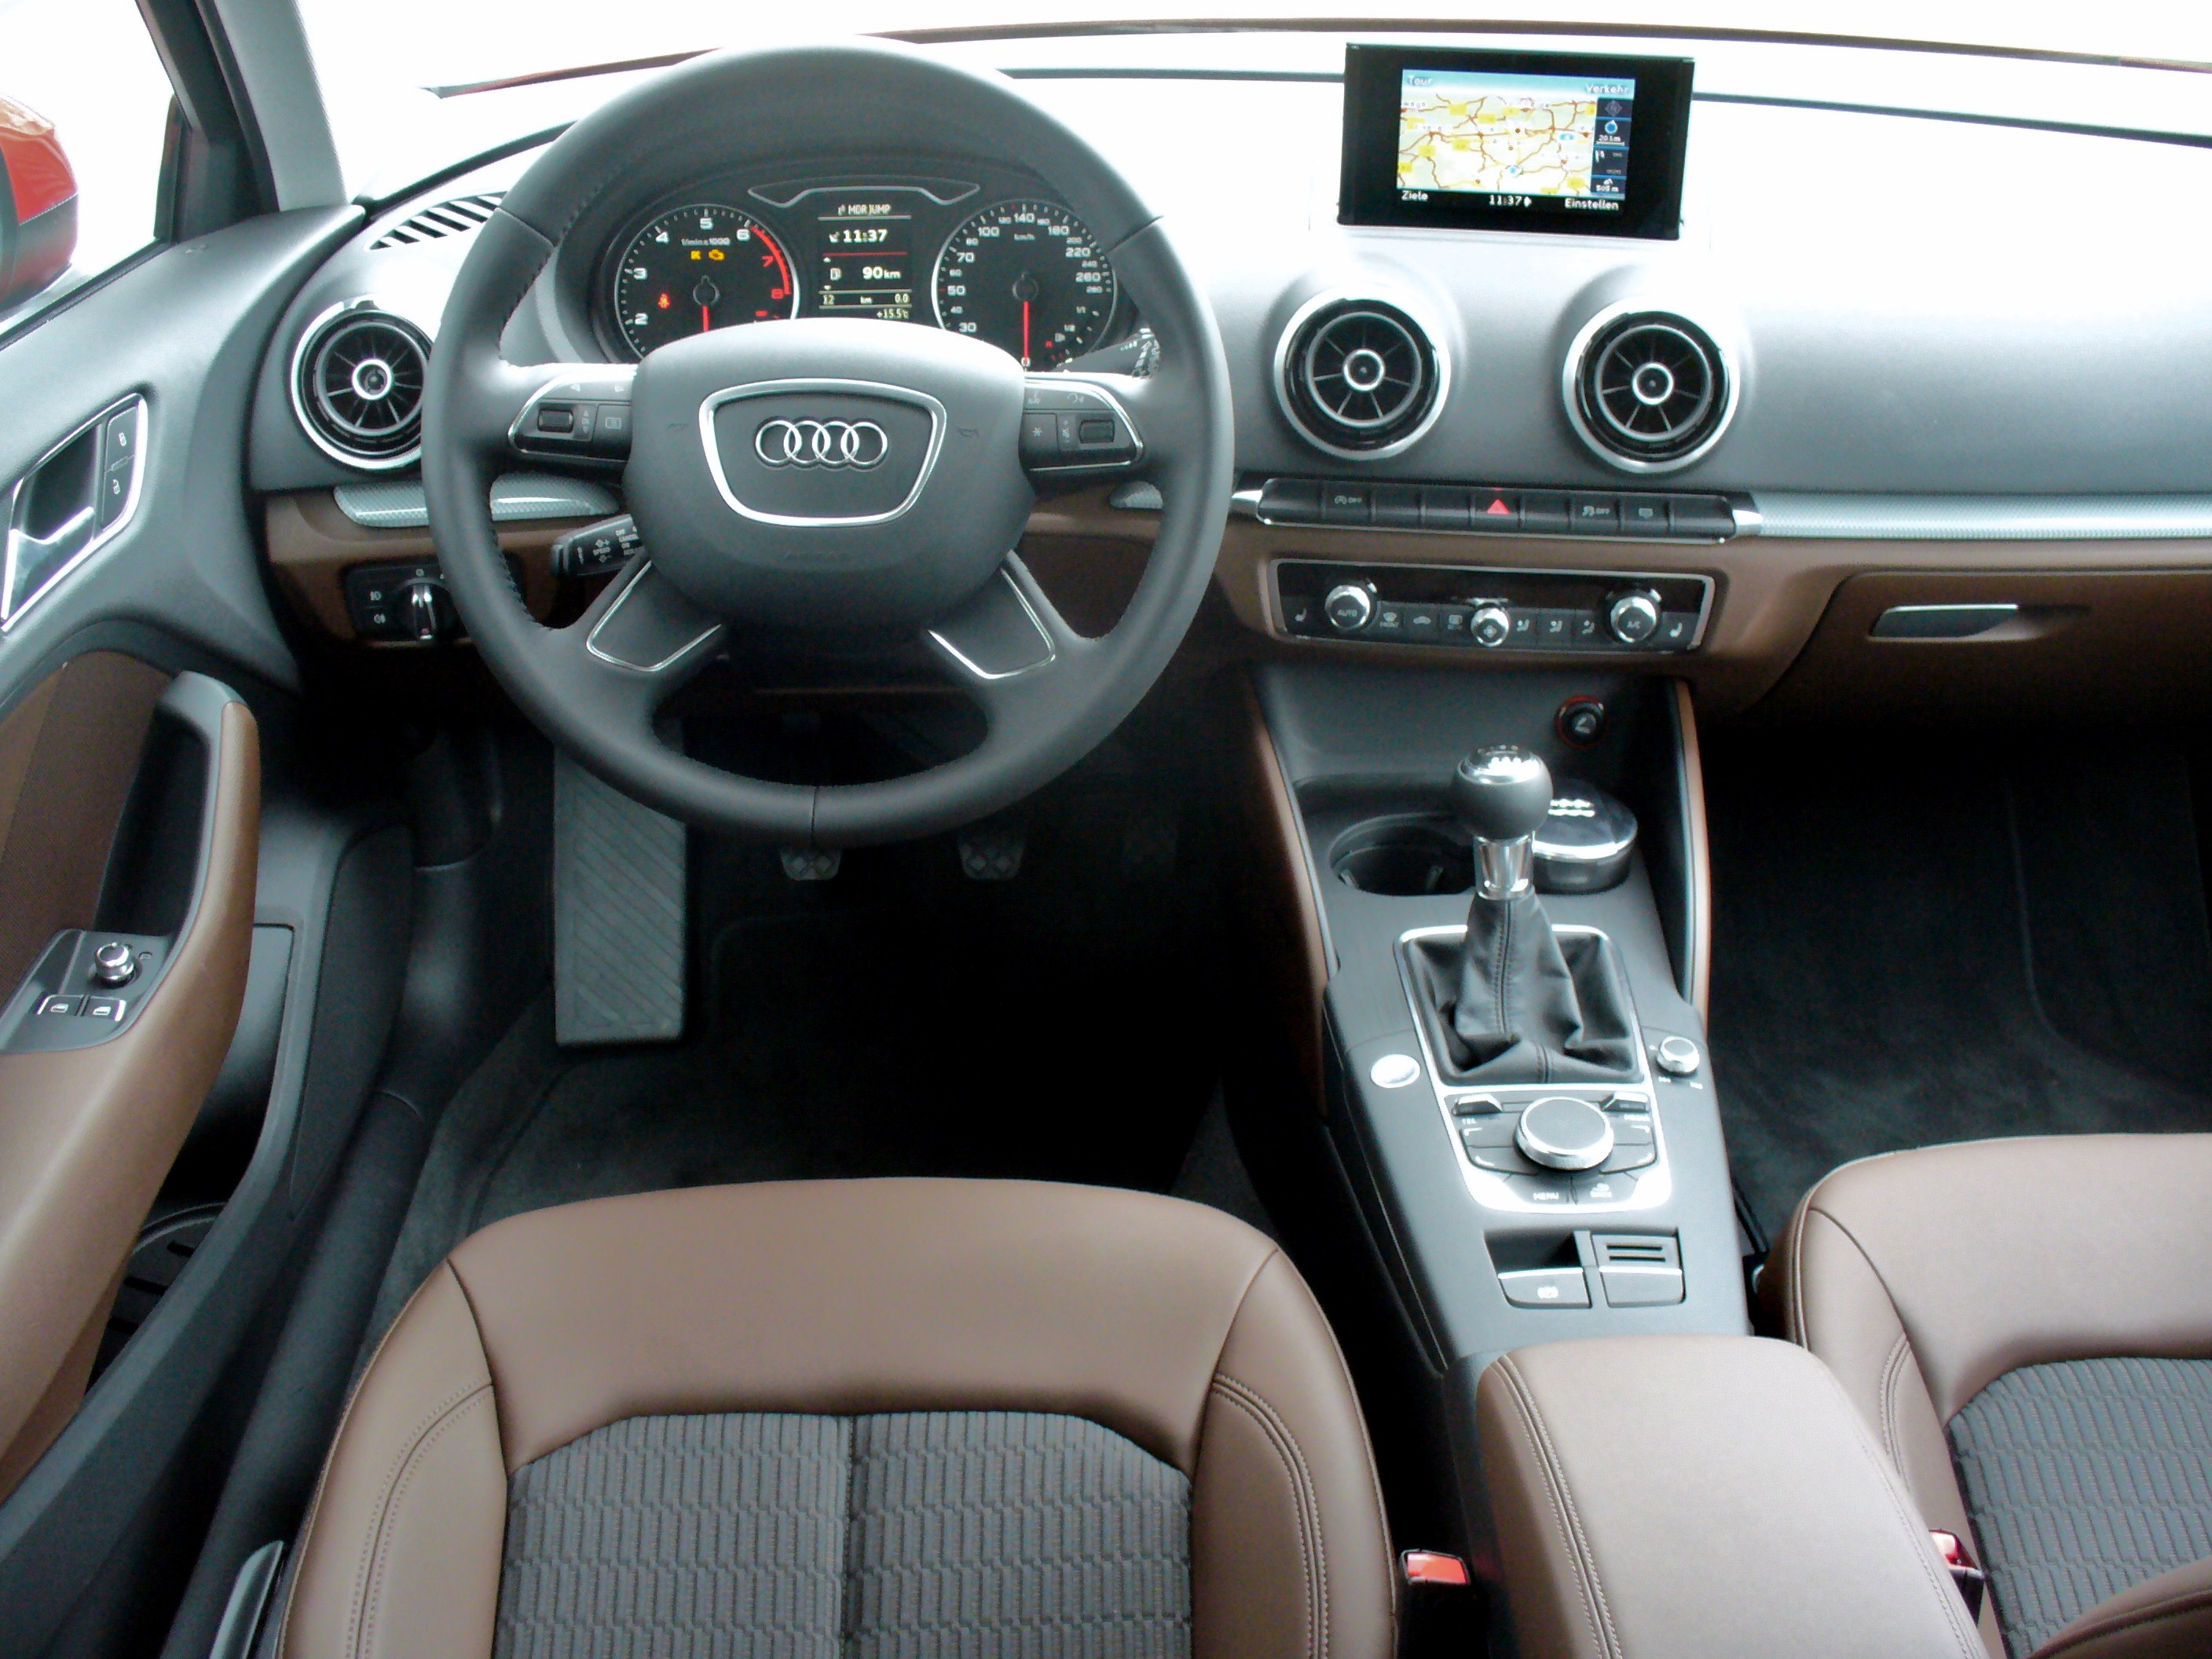 A3 Interieur File Audi A3 8v 1 4 Tfsi Ambiente Misanorot Interieur Jpg